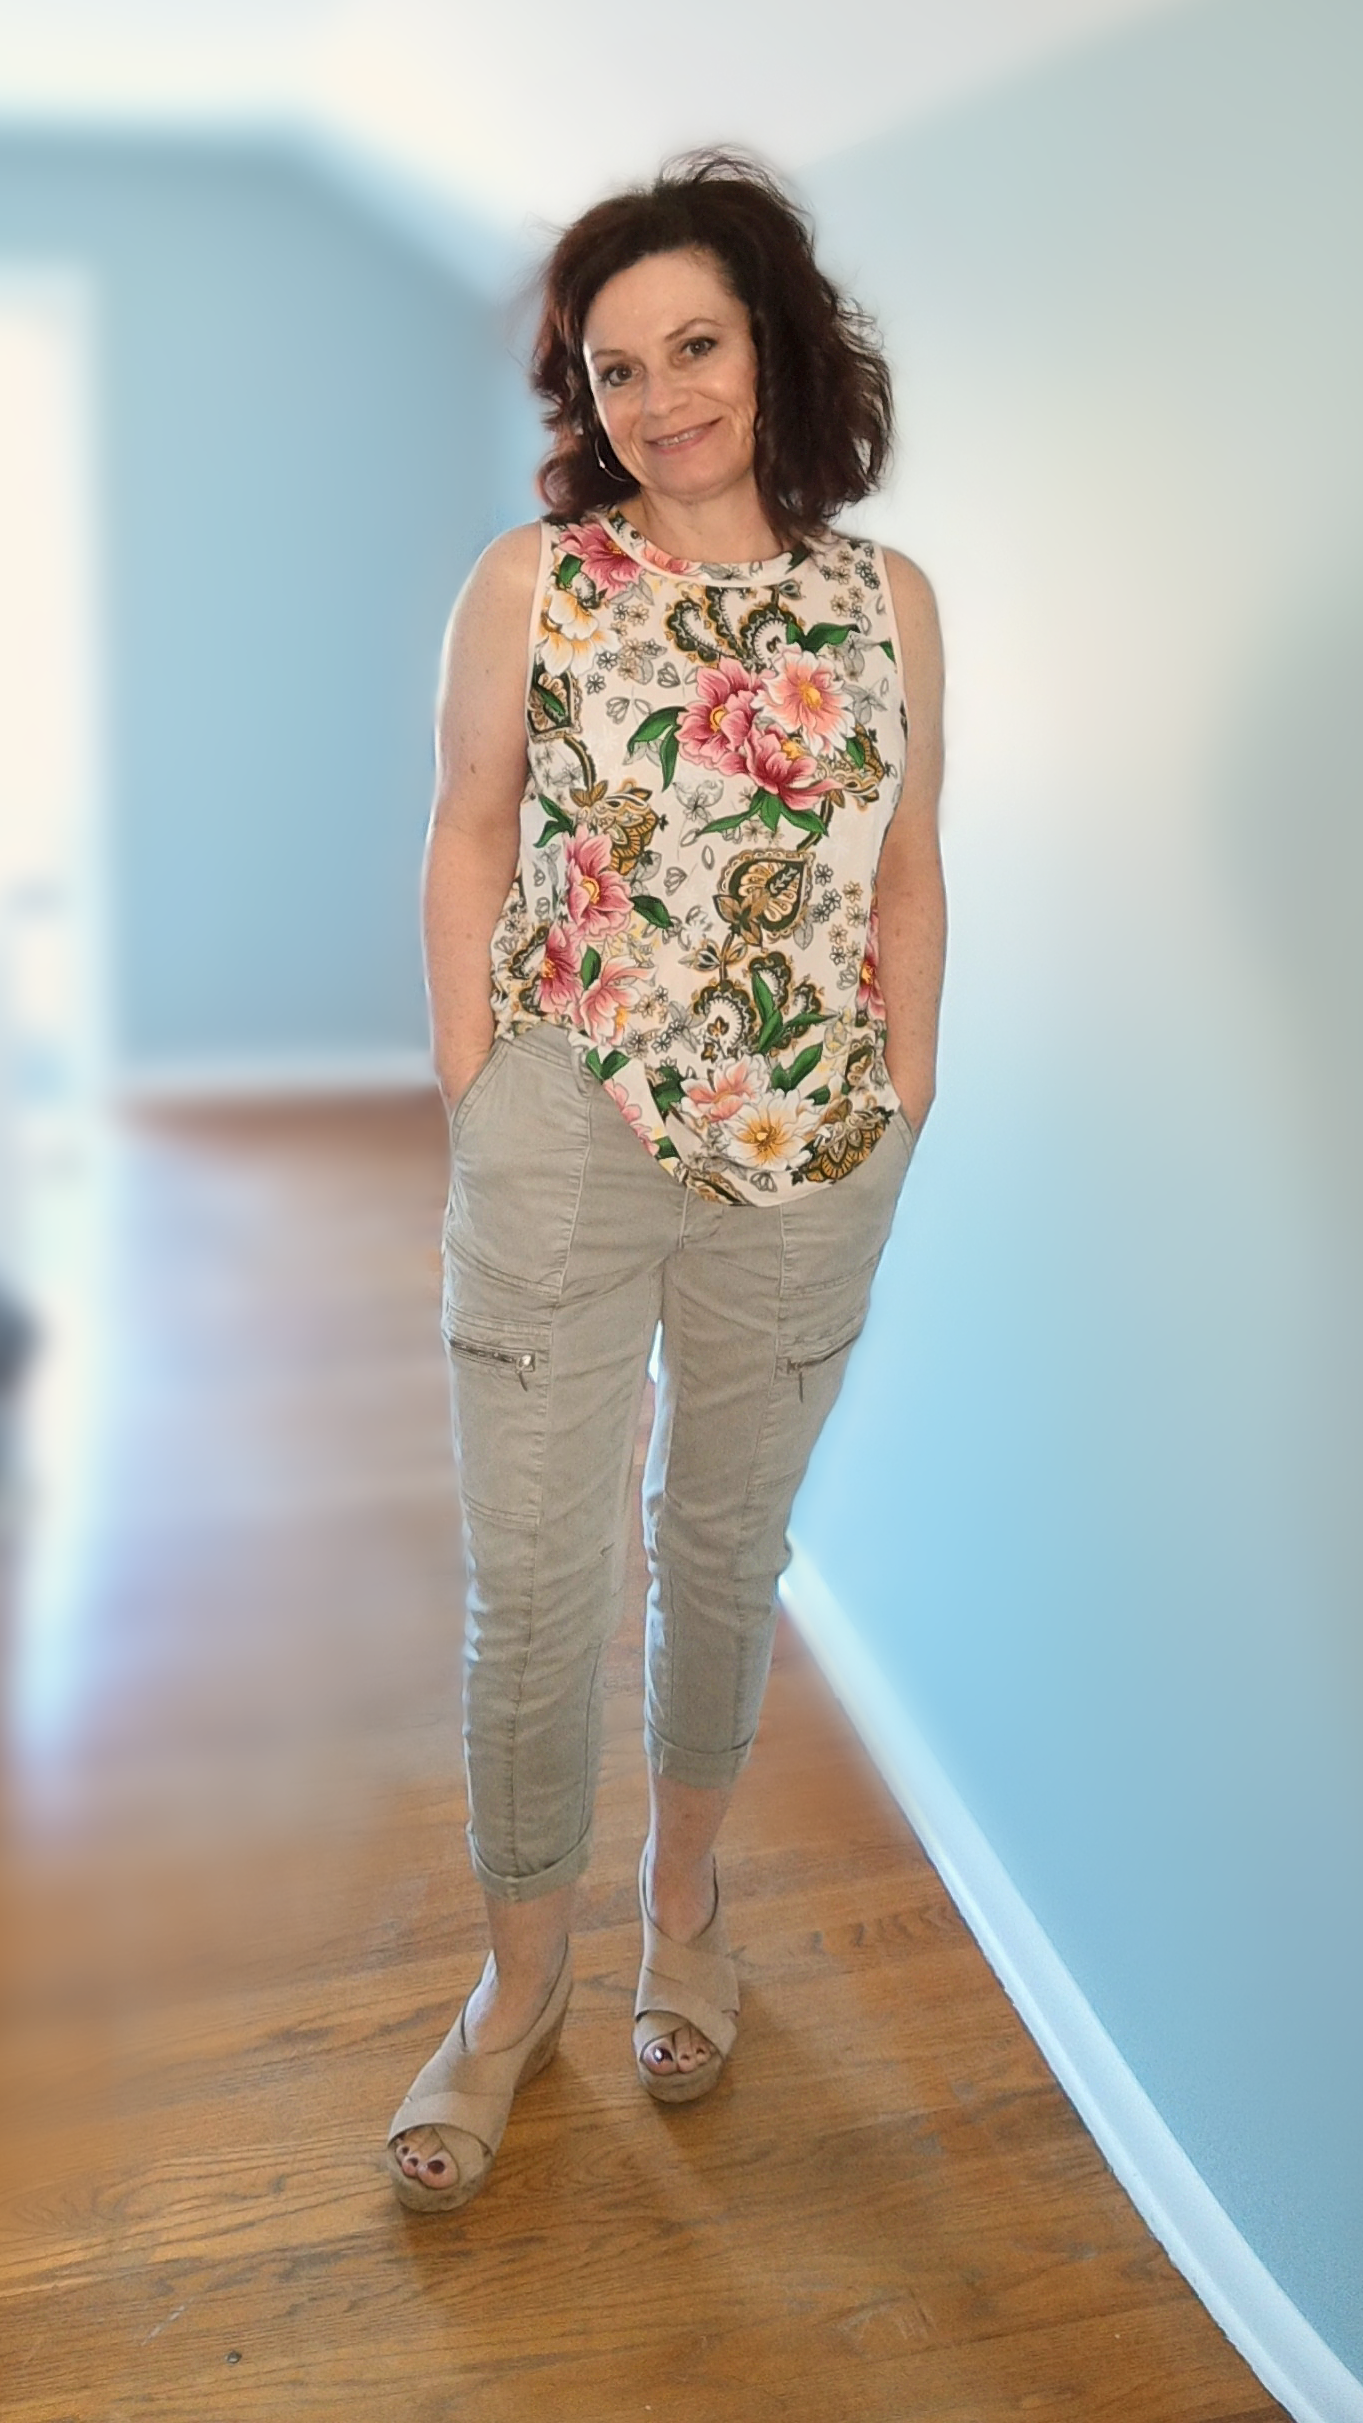 I started with a sleeveless top and simple pair of khakis... - I started with the top. It's a great print and it's sleeveless. What I love: all the colors in the print give me a ton of options for the layering pieces, bottoms and accessories. Because it's sleeveless I have many more options for layering, but also for wearing alone if temperatures are warmer because it's not just a camisole.